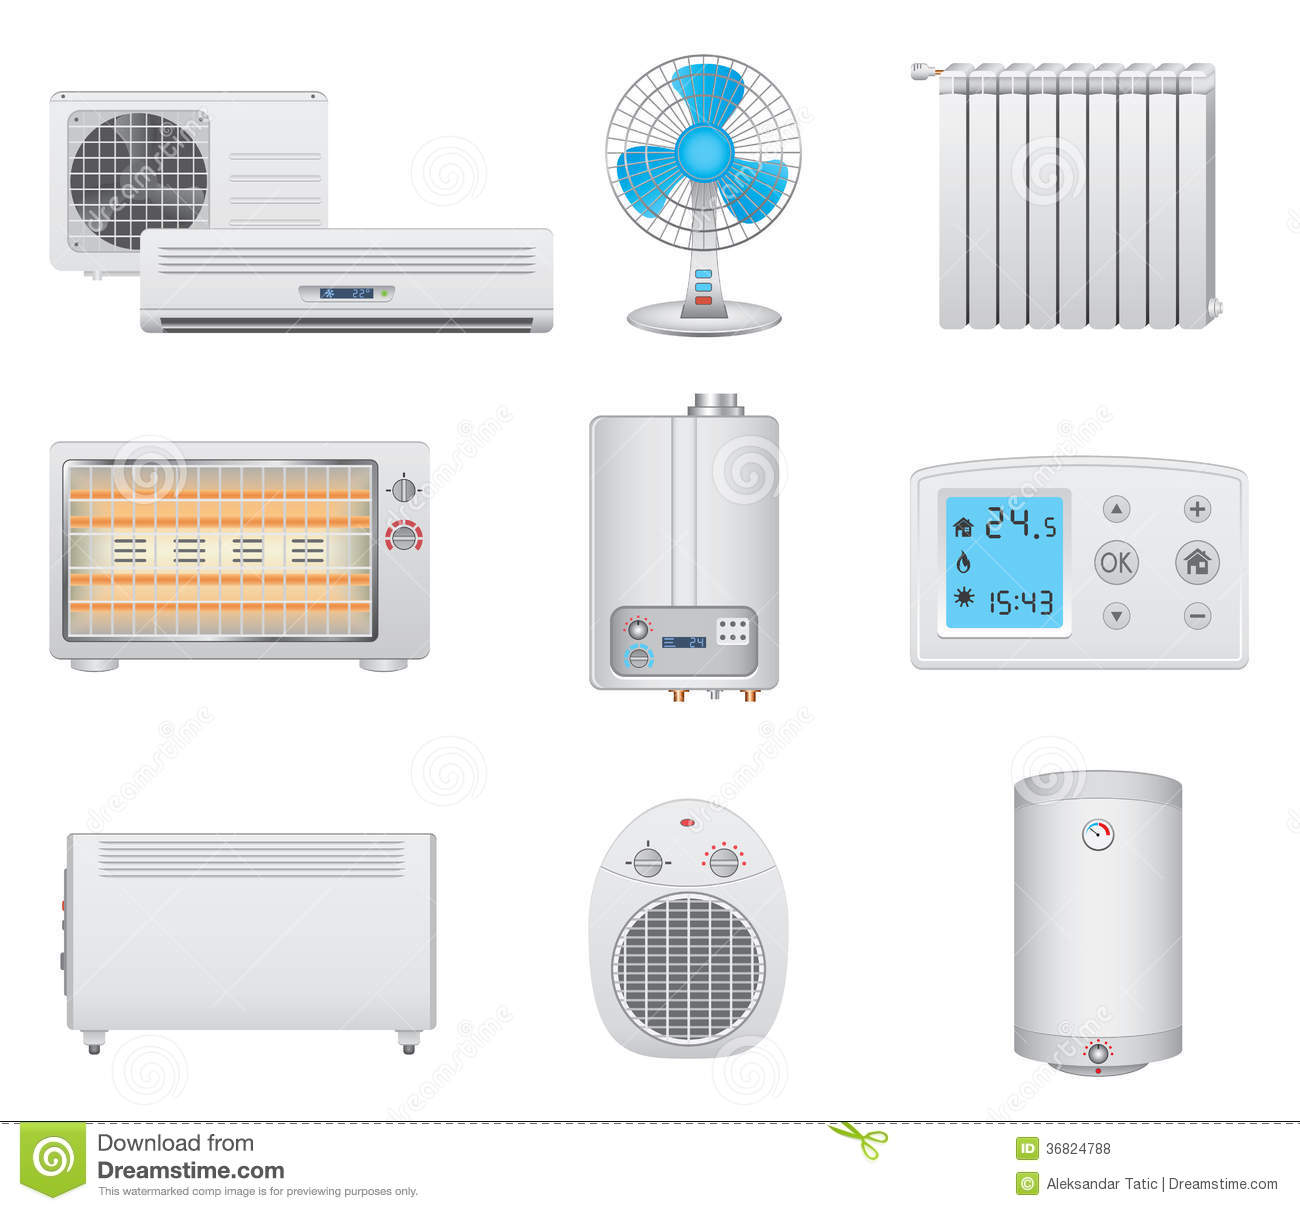 Clipart R O B Flame Logo additionally Temperature Outside as well Pressure system additionally Product info as well Learn More About Icons On The Nest Learning Thermostat. on heating and cooling icons